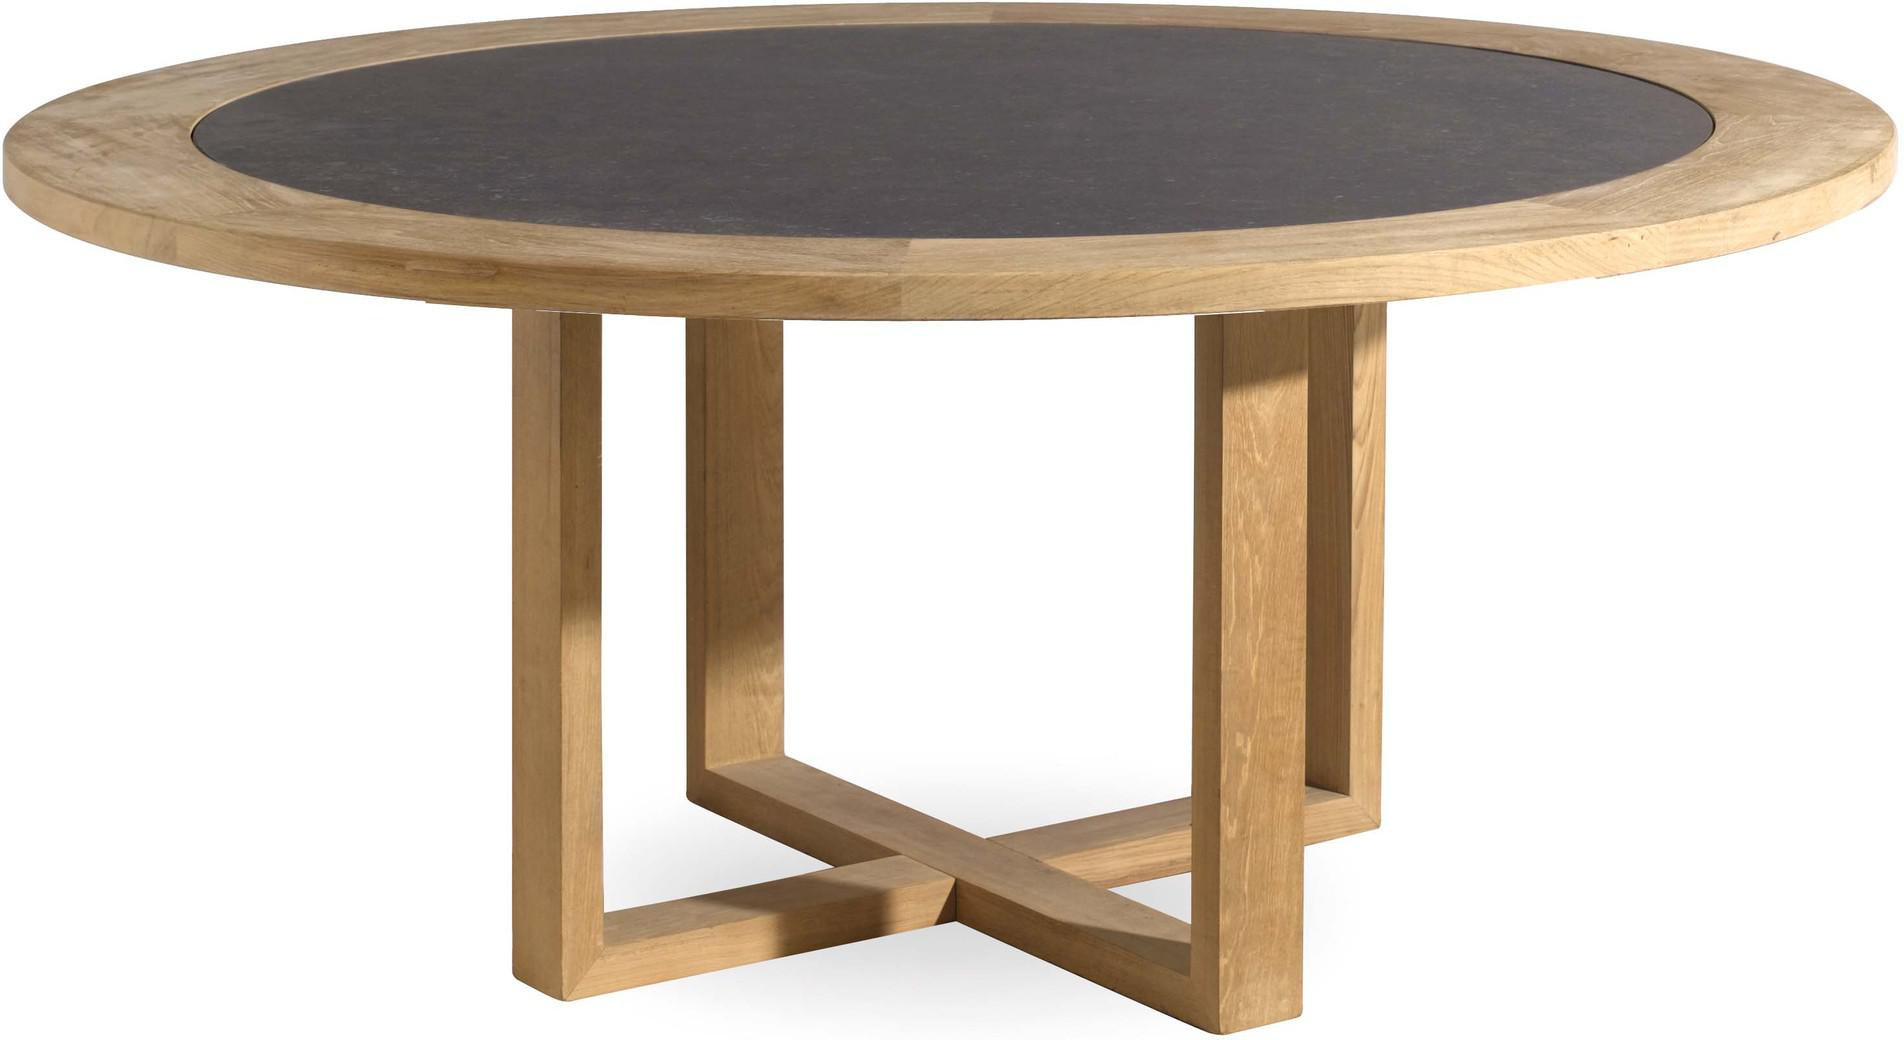 Siena Dining table - Teak - 40BD 155